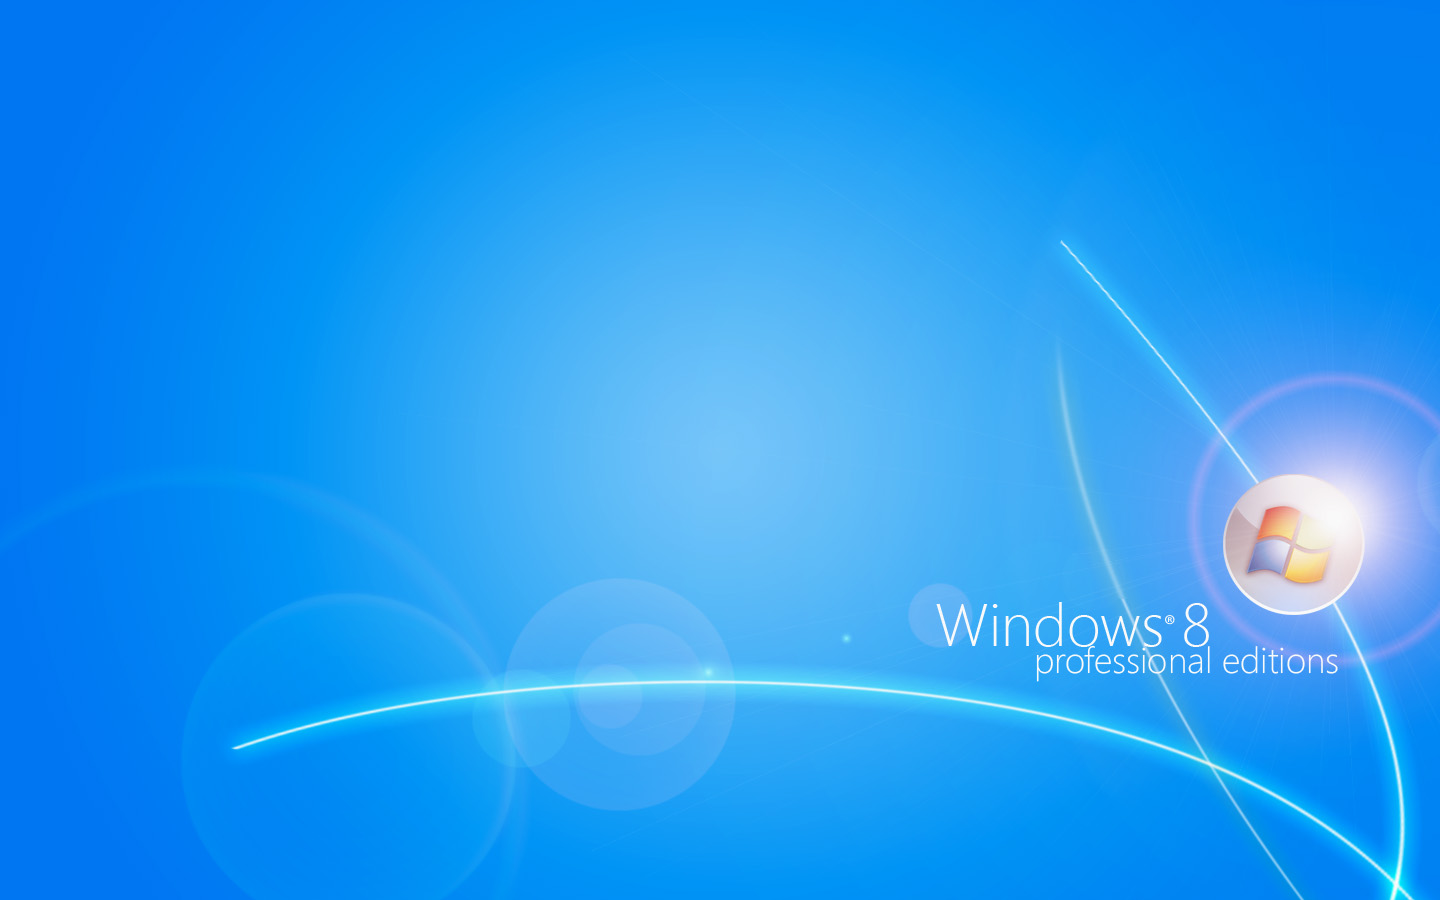 Windows 8 Wallpapers Release: Free Wallpapers: Windows 8 Wallpapers